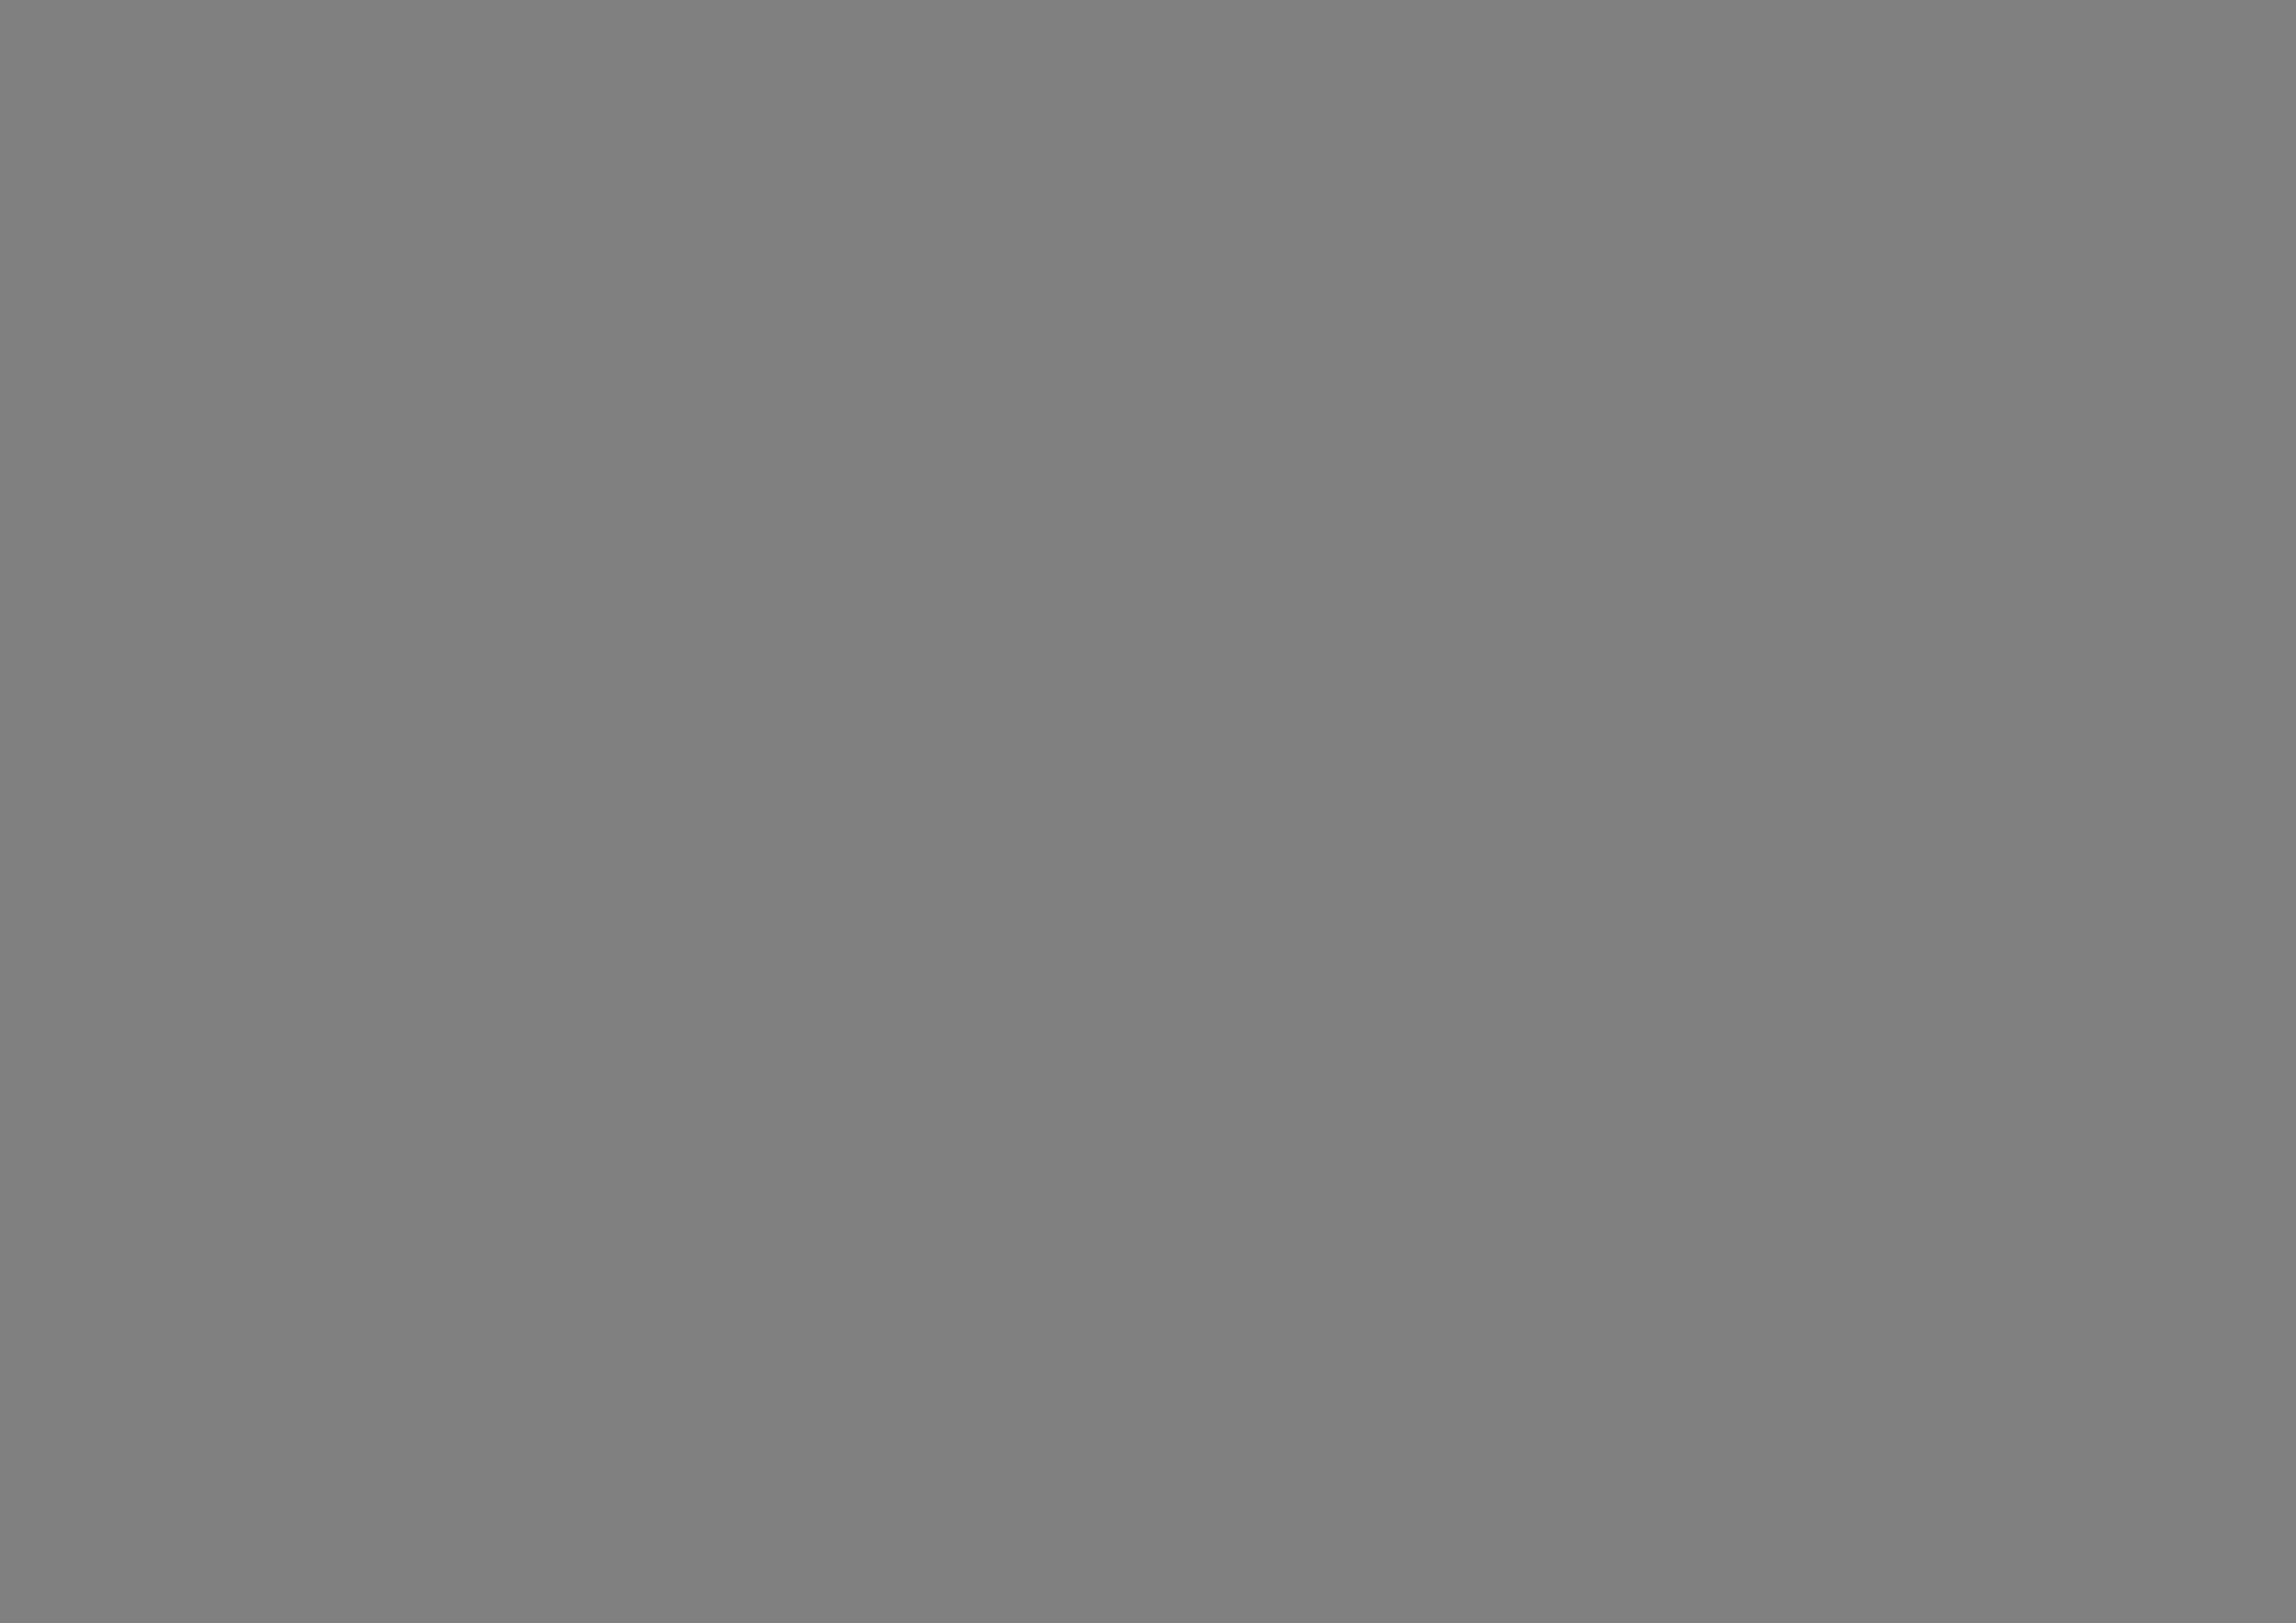 3508x2480 Trolley Grey Solid Color Background